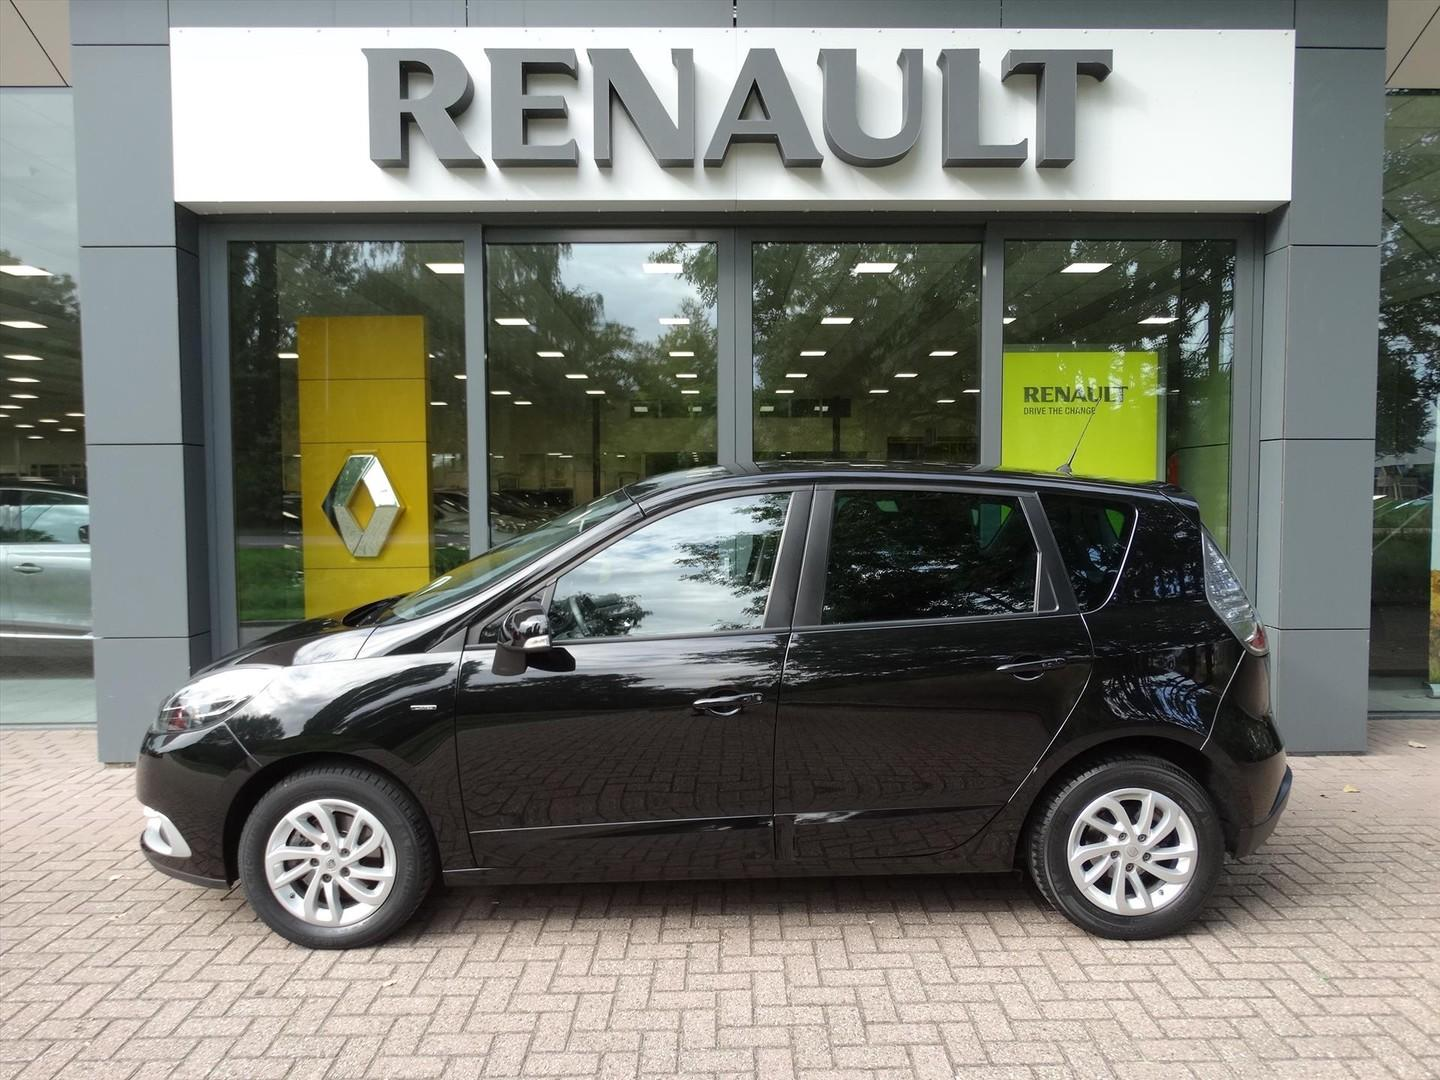 Renault Scénic 1.5 dci 110 pk limited